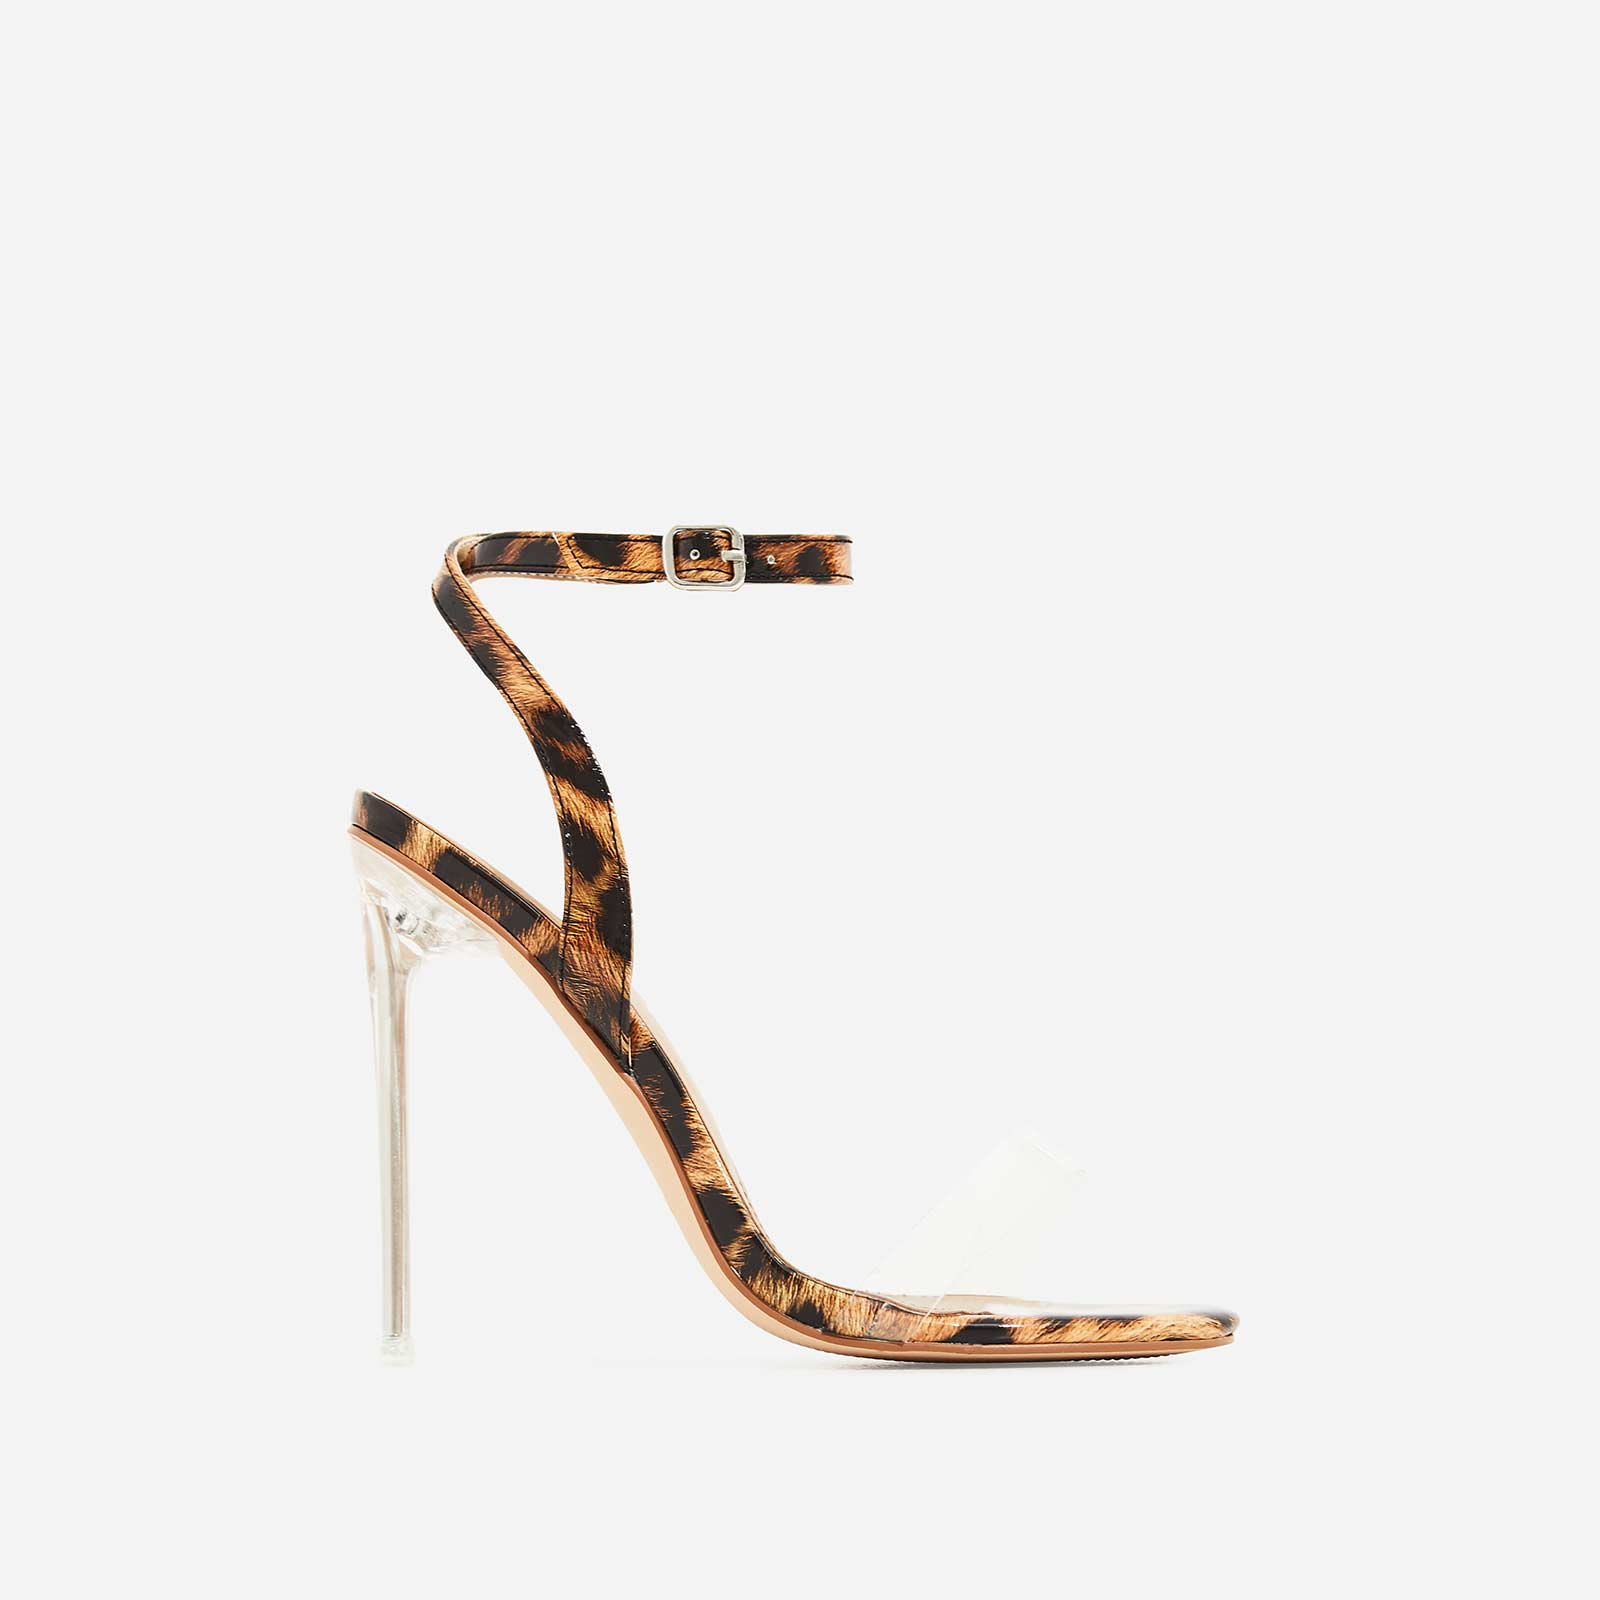 Chrissy Perspex Pointed Barely There Heel In Tan Leopard Print Patent